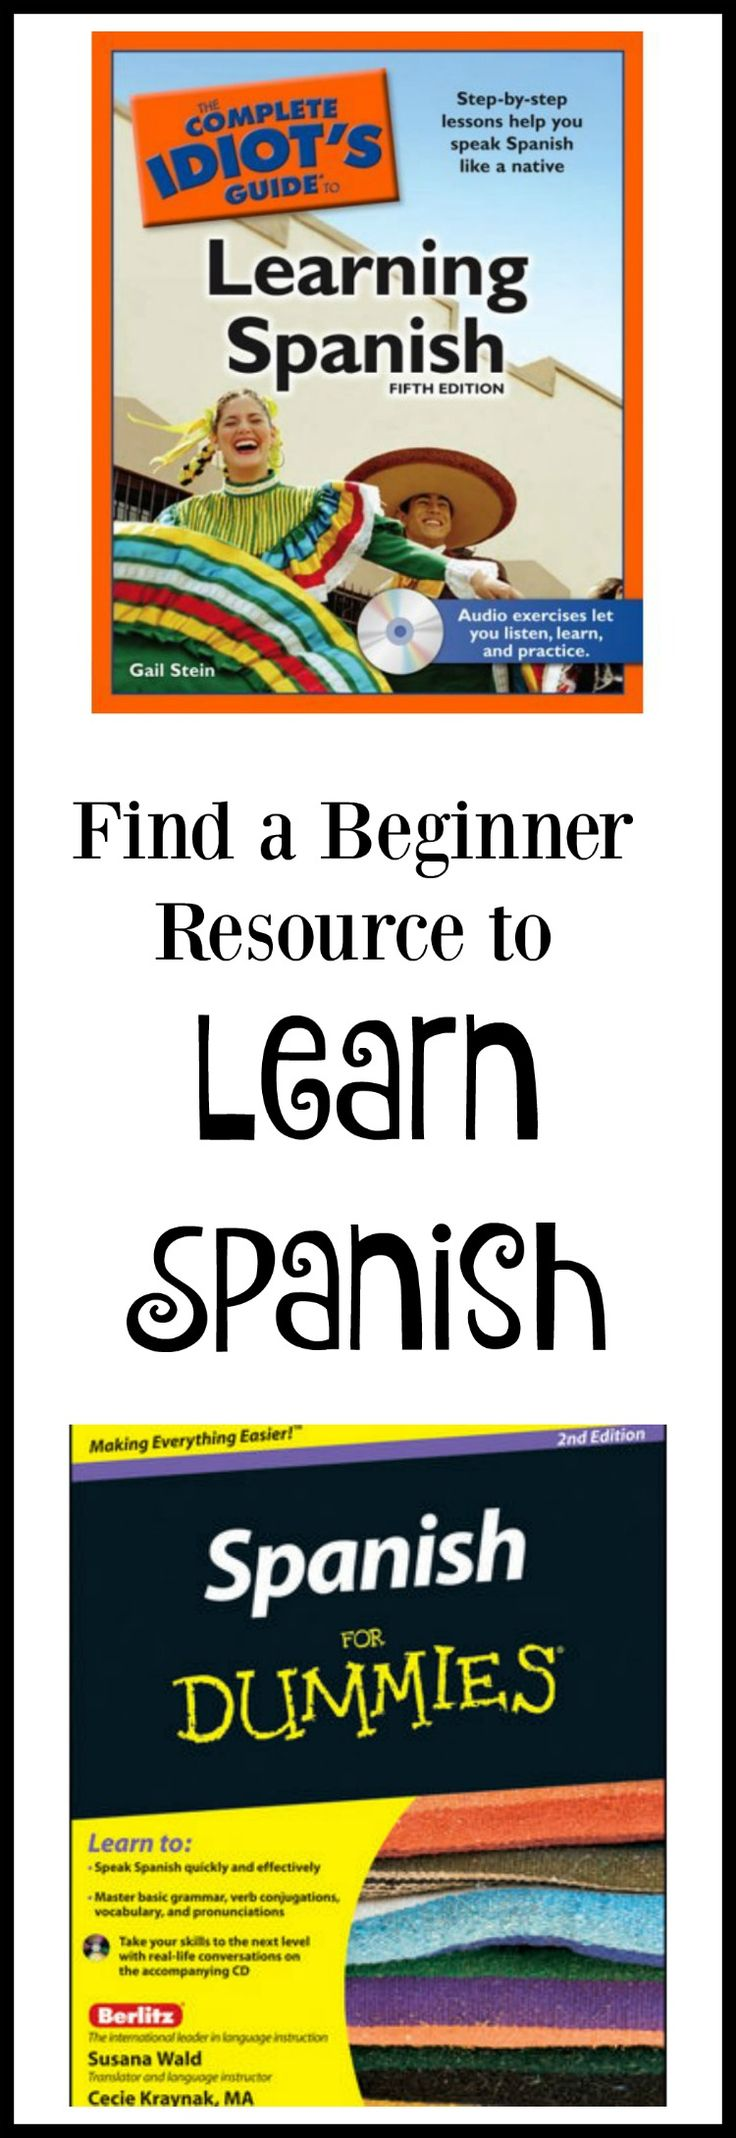 Need to learn basic Spanish? A visit to the bookstore could get you started. Read this comparison review to see which resource may be the best for you! via @LauraOinAK